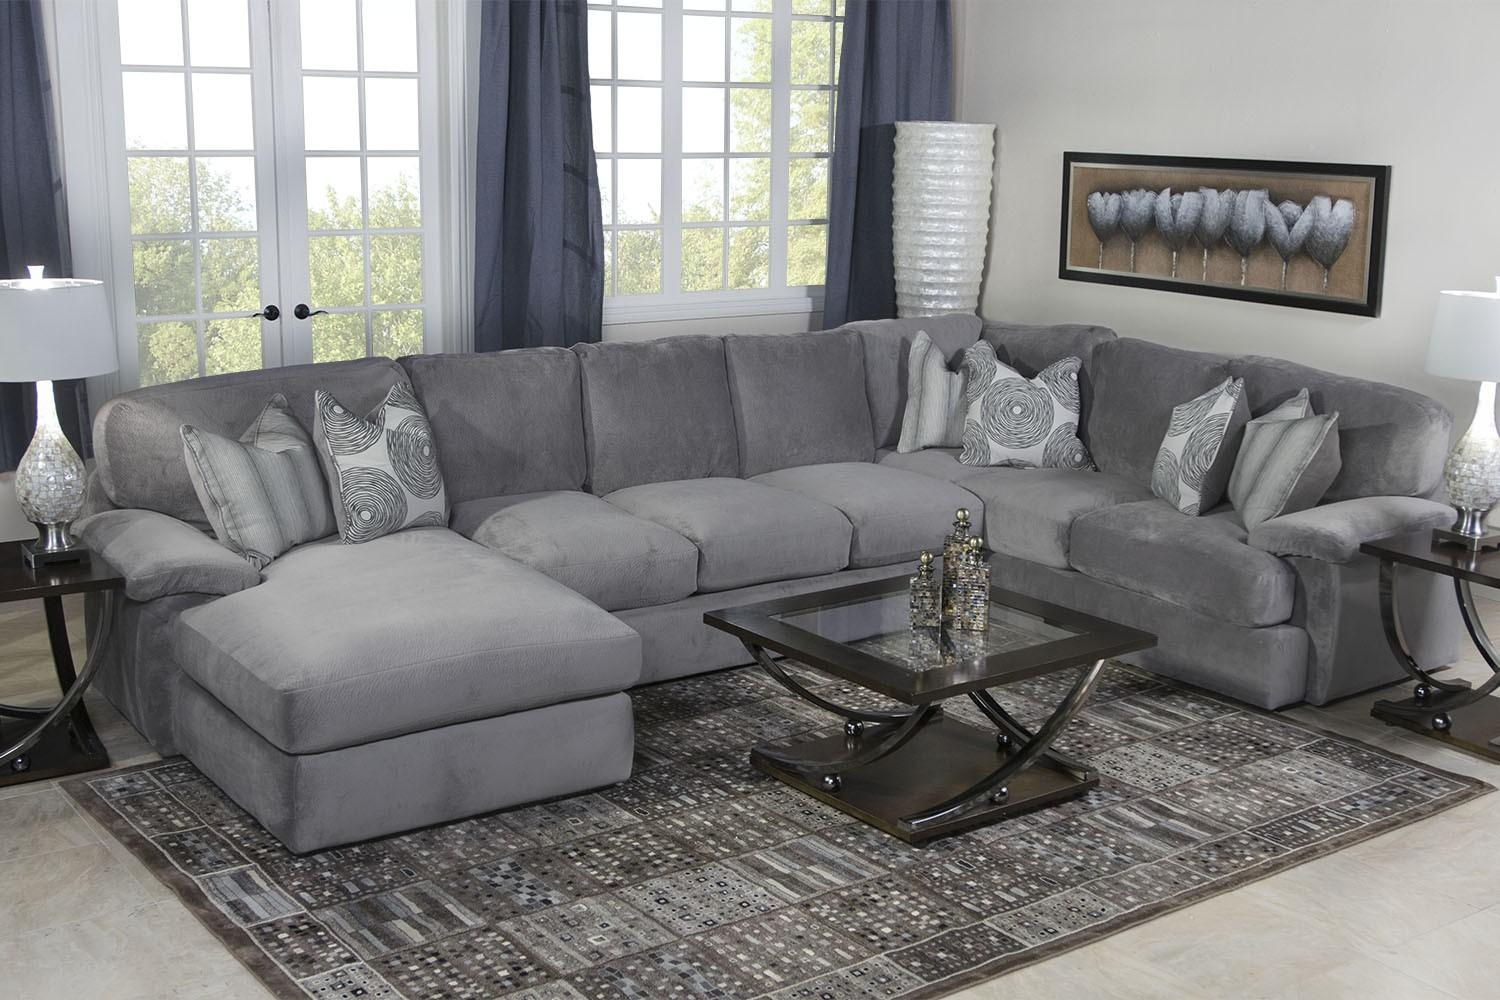 rooms for less furniture 20 choices of media sofa sectionals sofa ideas 16992